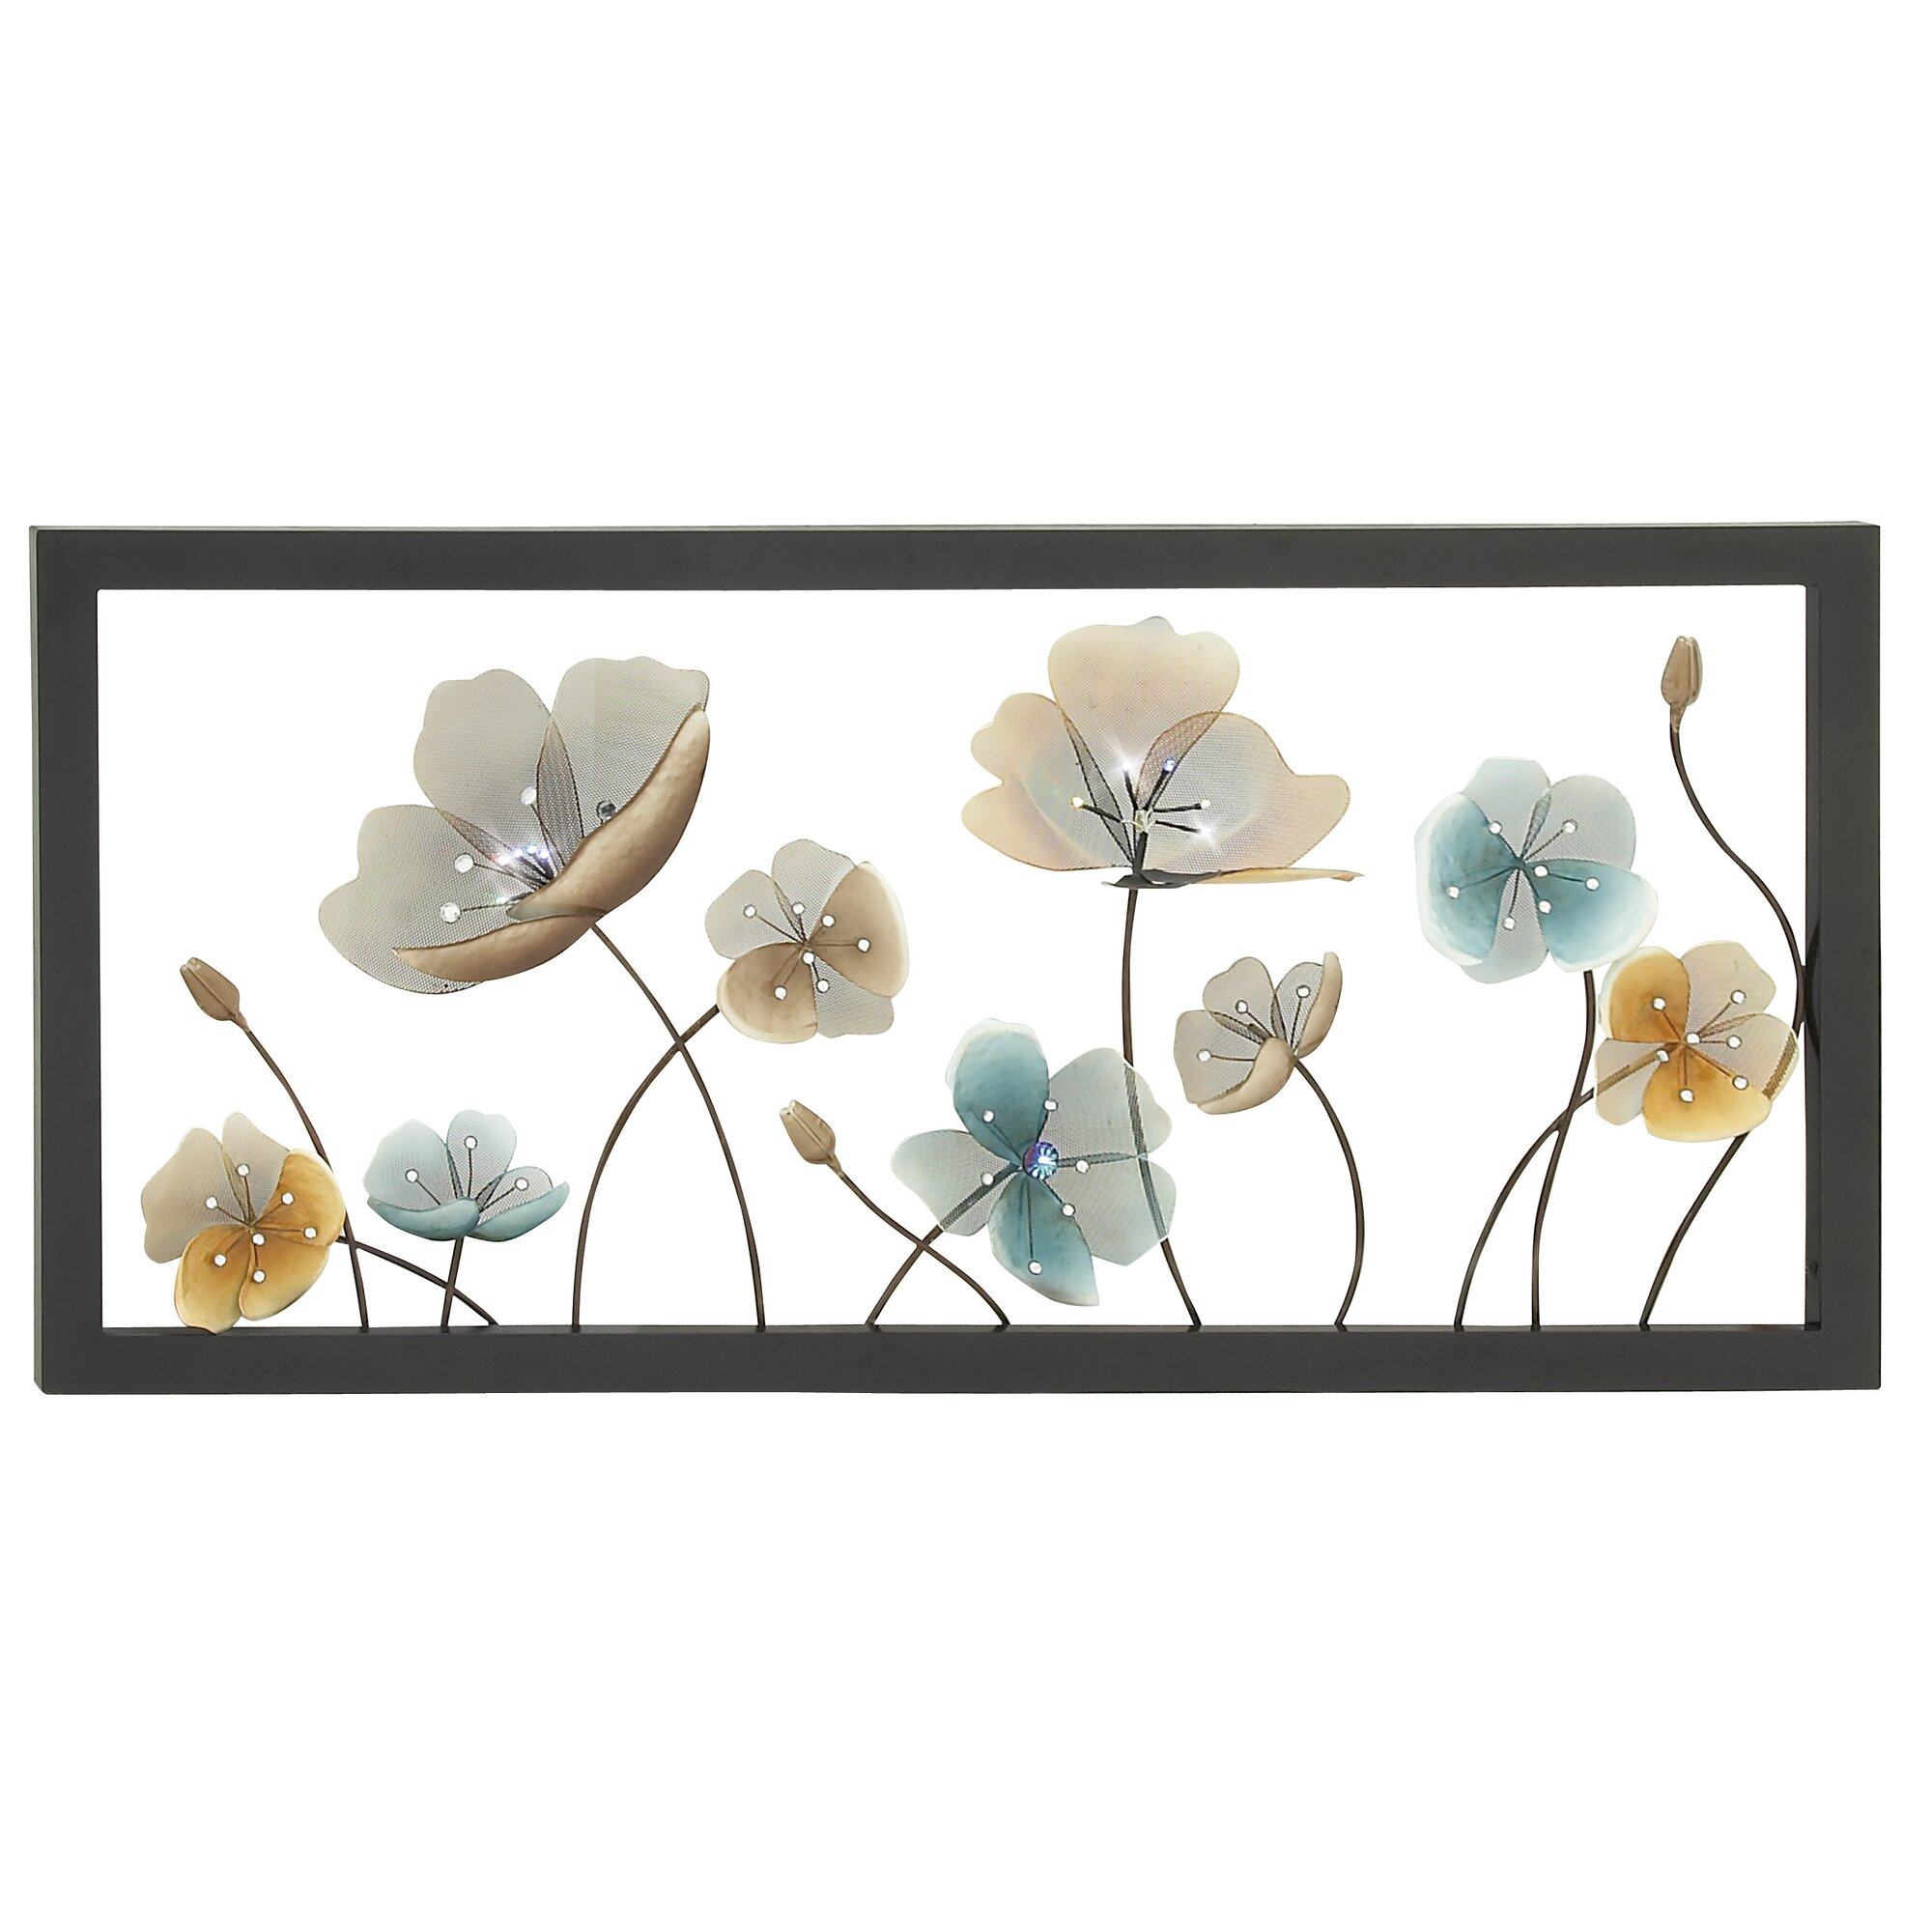 Wall Decor Horizontal : Darby home co horizontal frame led wall d?cor reviews